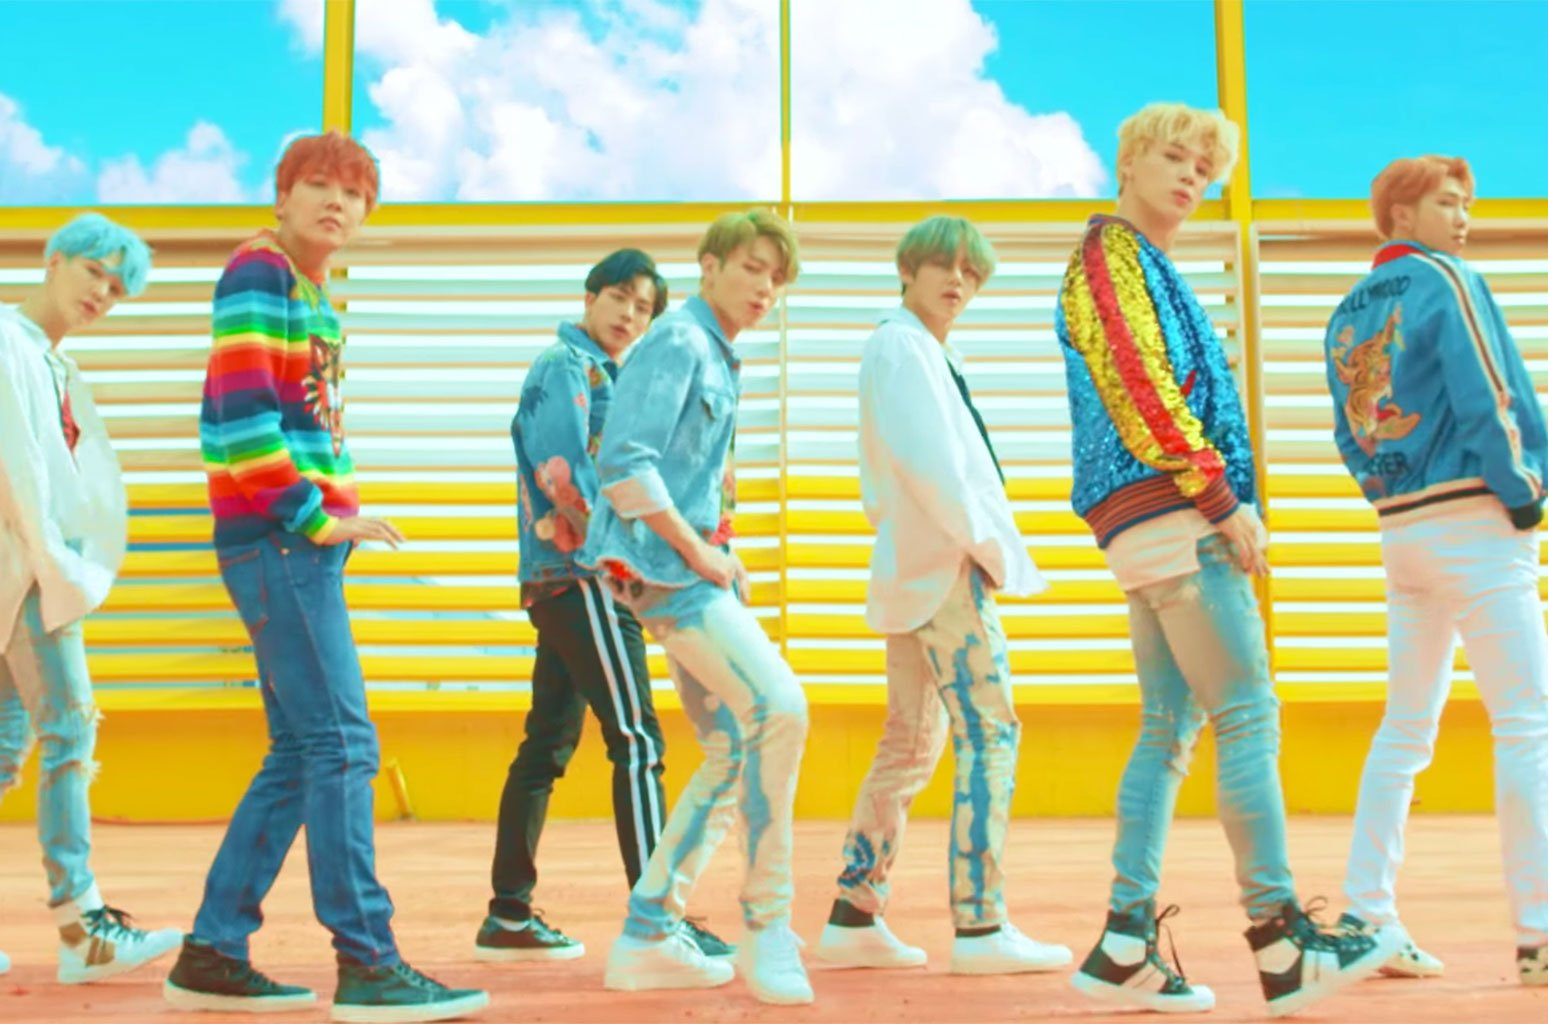 .@BTS_twt's 'DNA' is officially the most viewed music video by a K-pop group on Youtube https://t.co/xM1rspXEjO https://t.co/VrDDNPXPrX